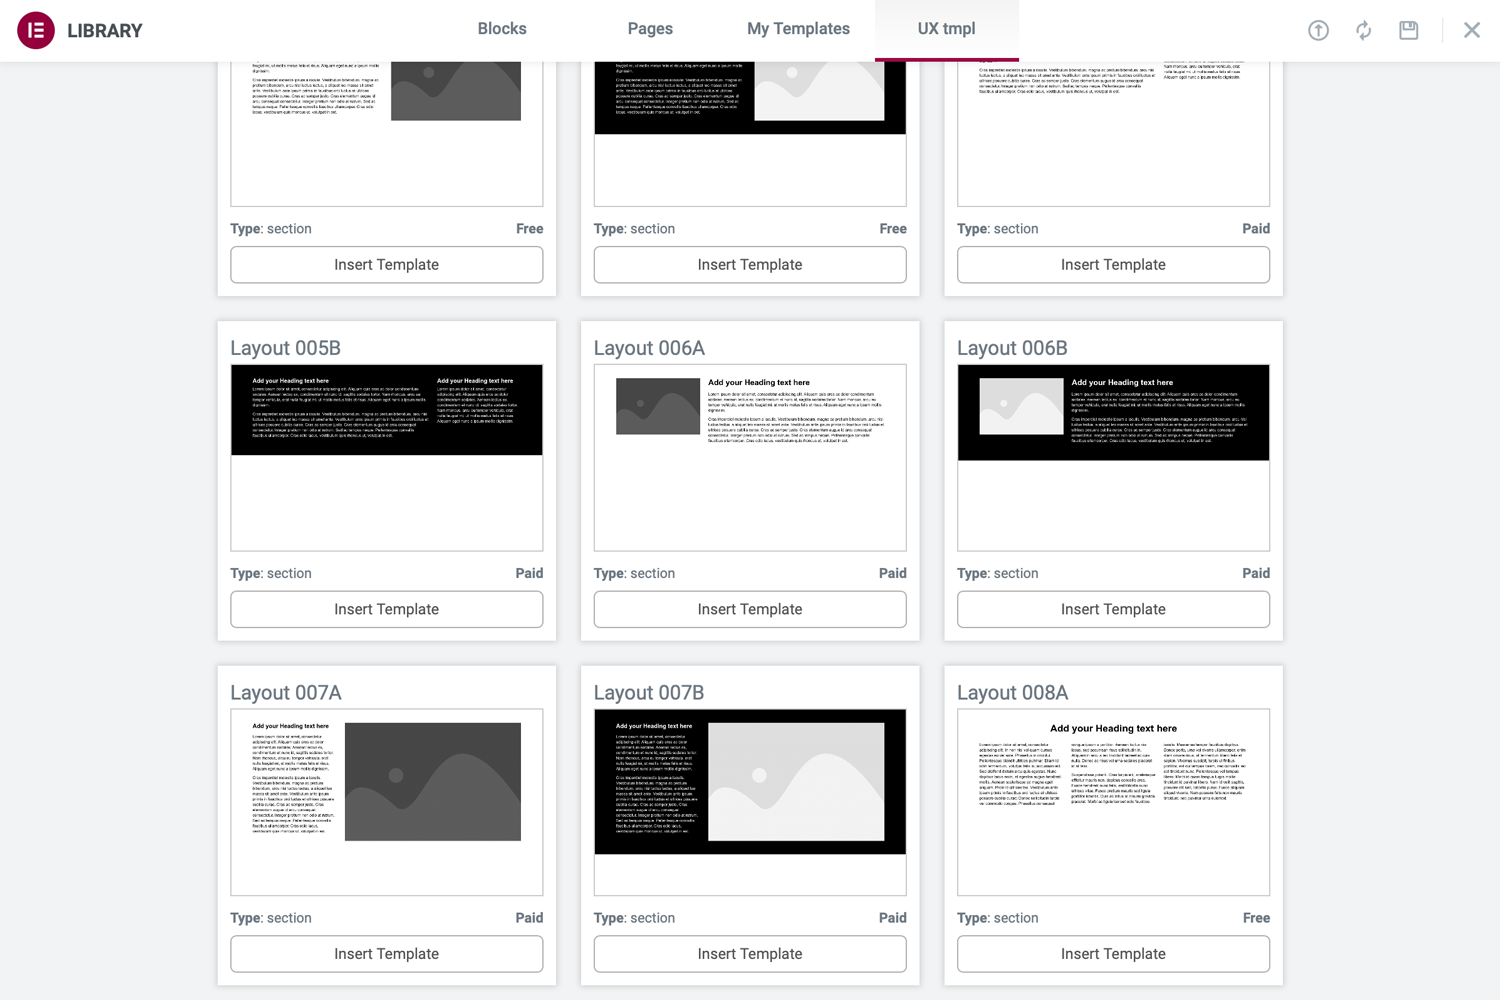 UX tmpl - Templates Counting